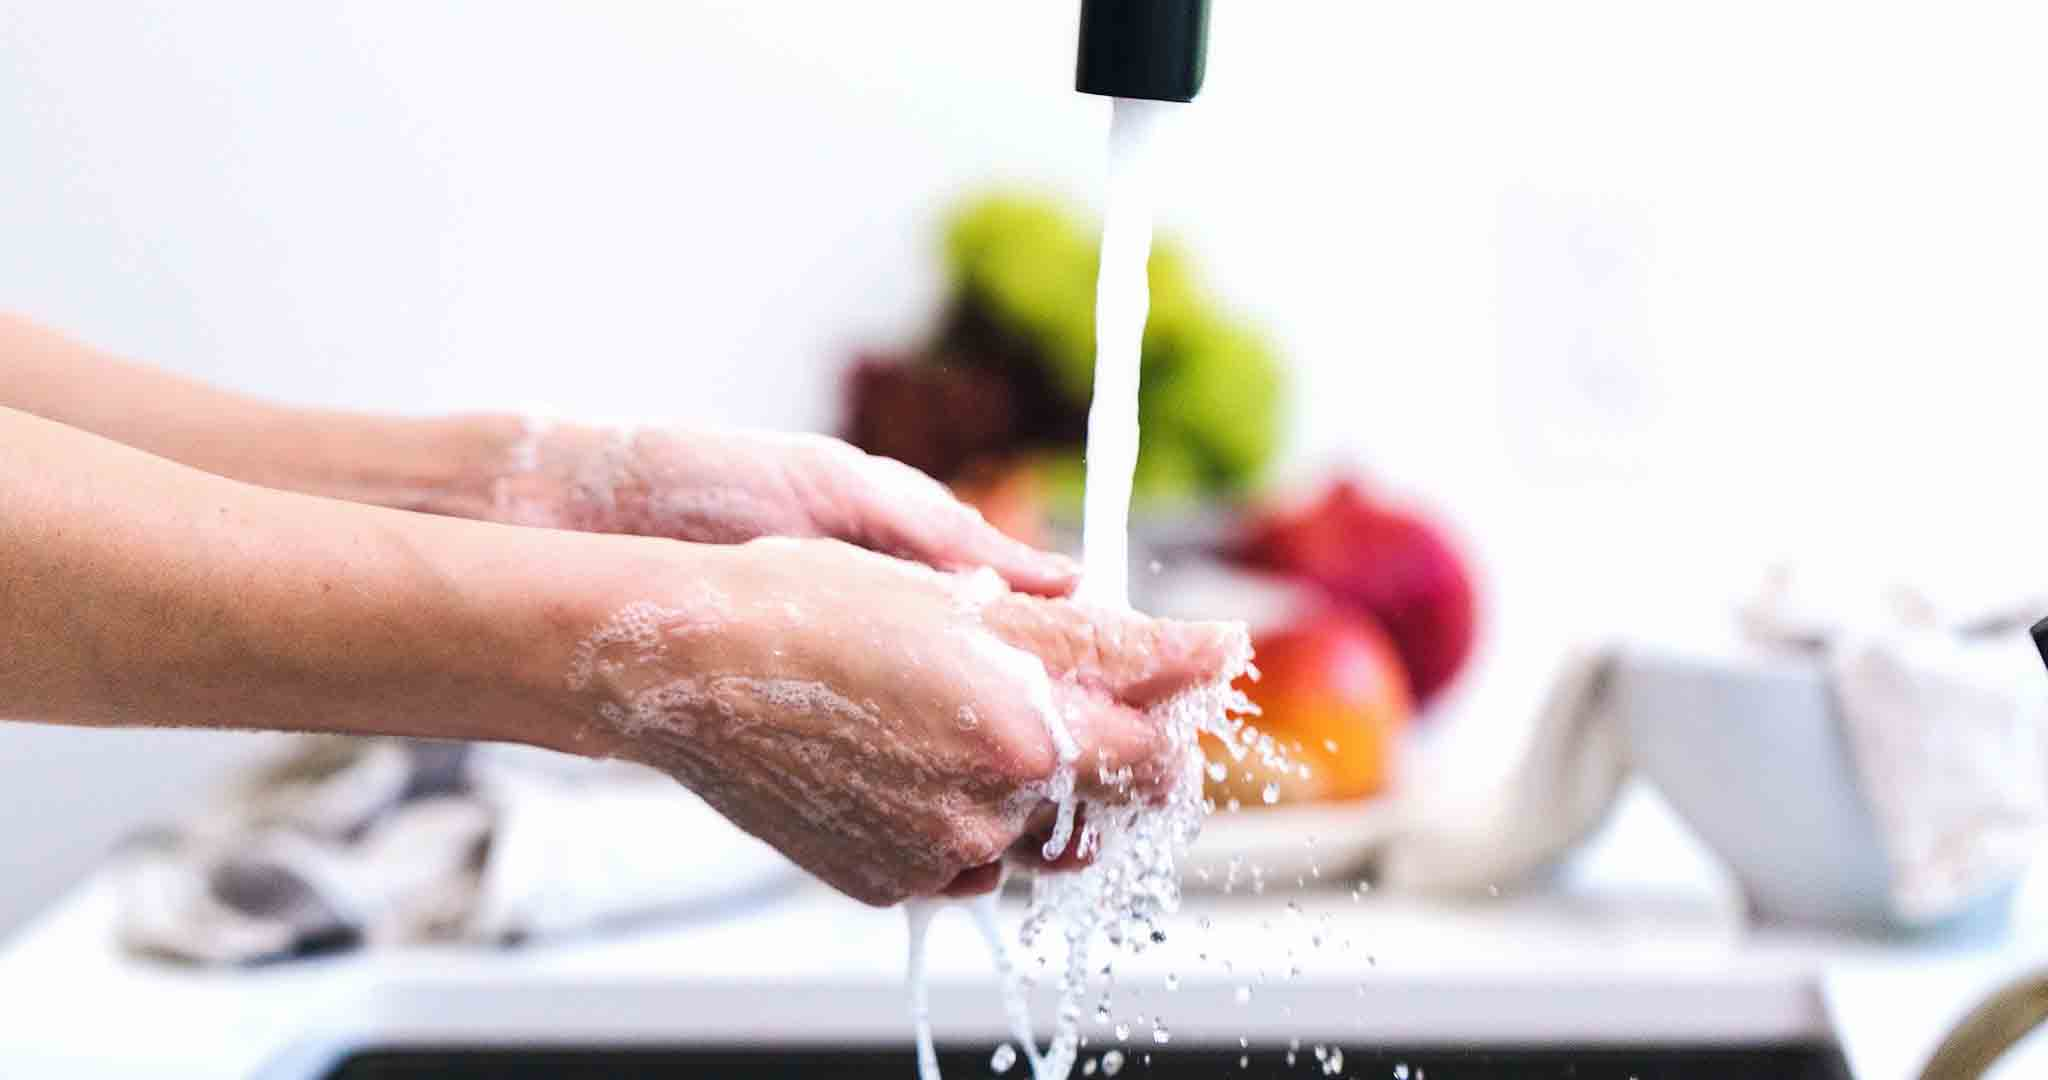 cleaning hands handwashing health stock photography